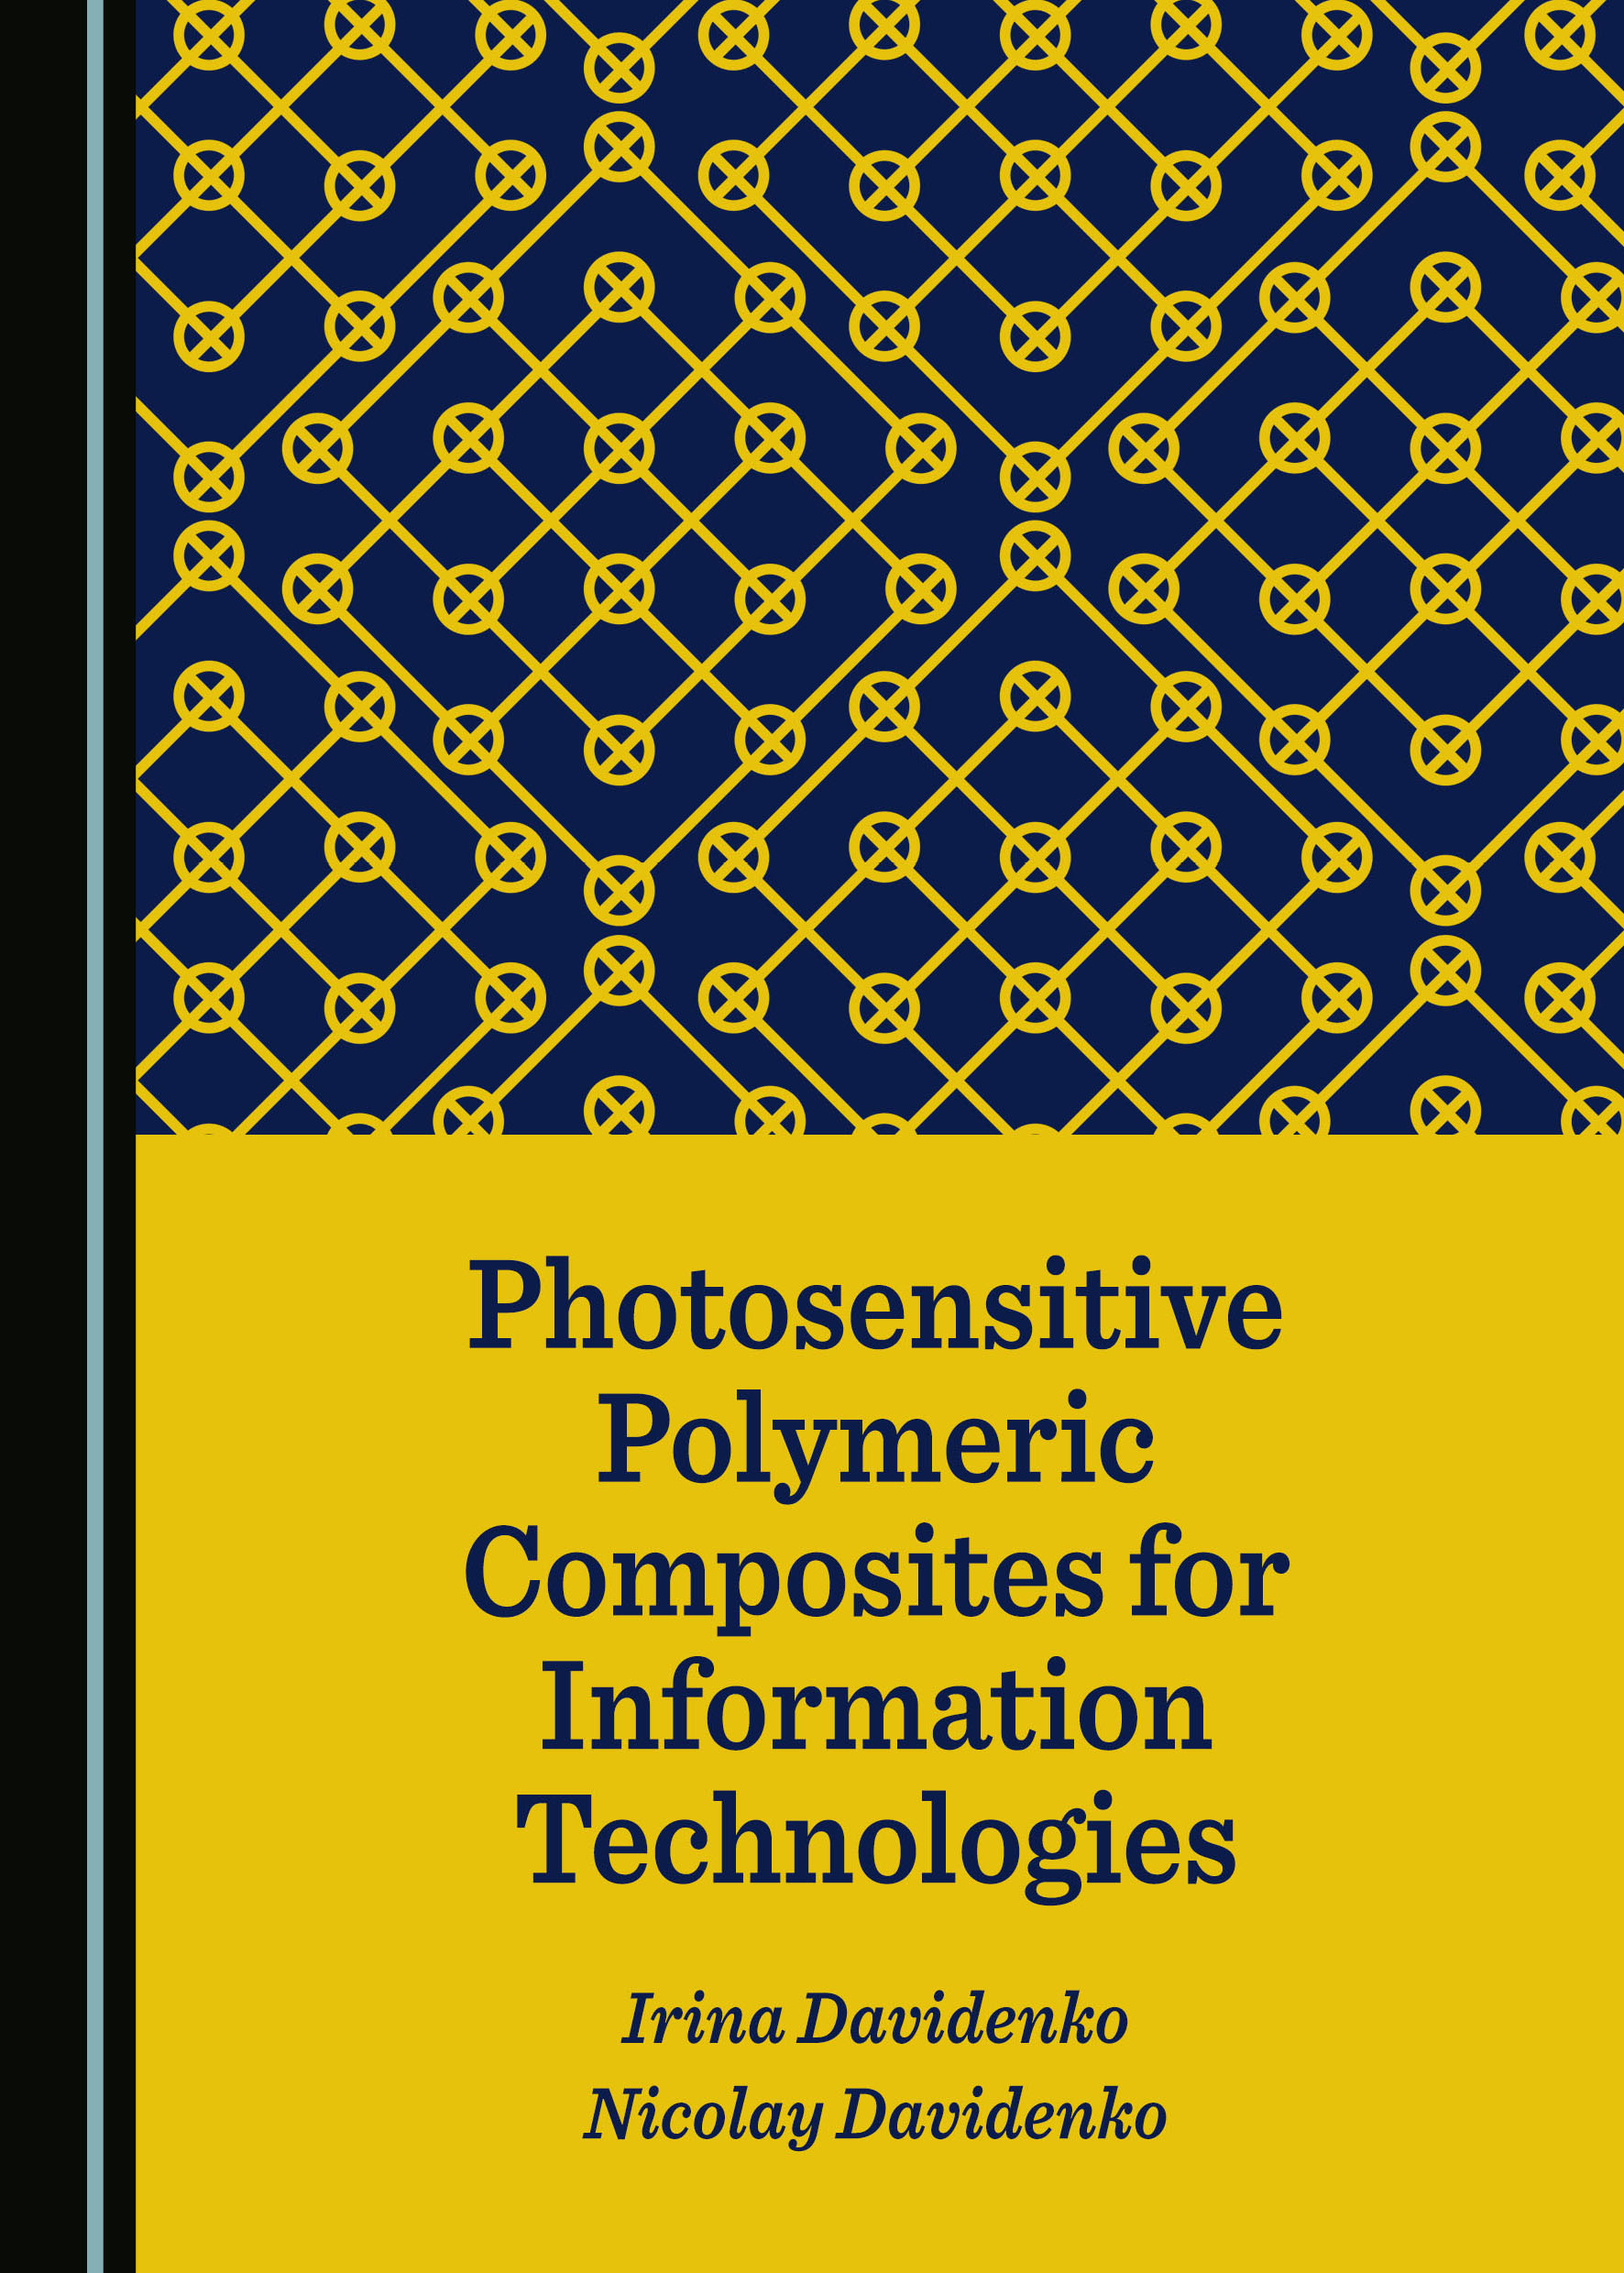 Photosensitive Polymeric Composites for Information Technologies